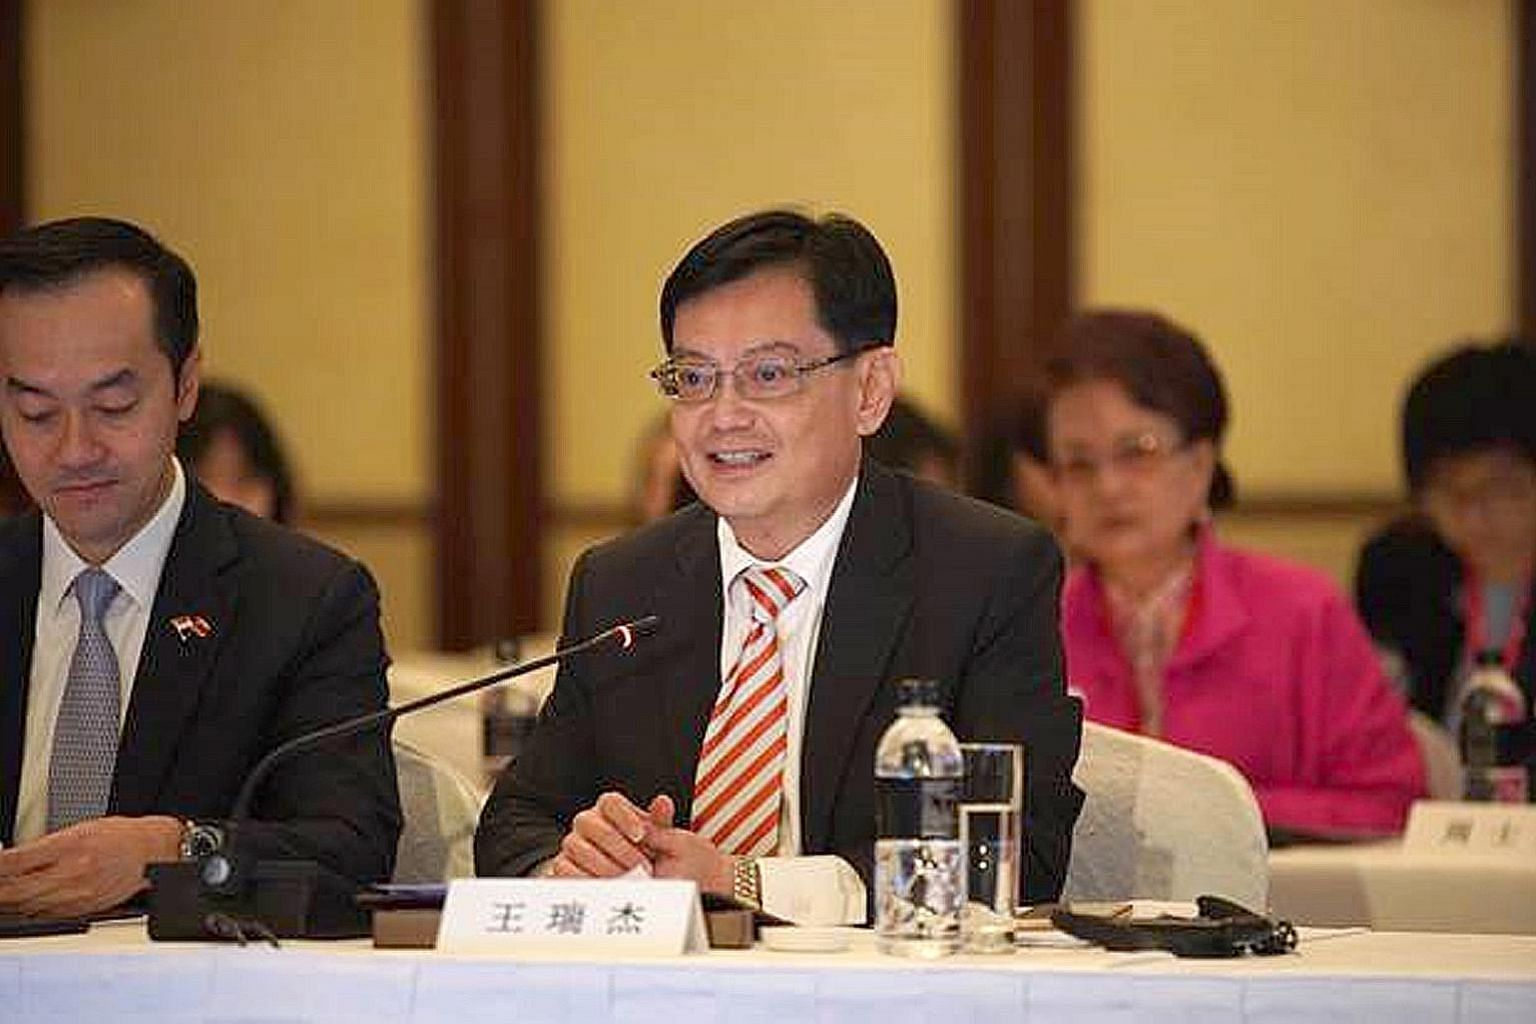 Finance Minister Heng Swee Keat (at right) said Singapore is committed to partner Jiangsu in supporting China's economic priorities. With him is Senior Minister of State for Trade and Industry Koh Poh Koon.